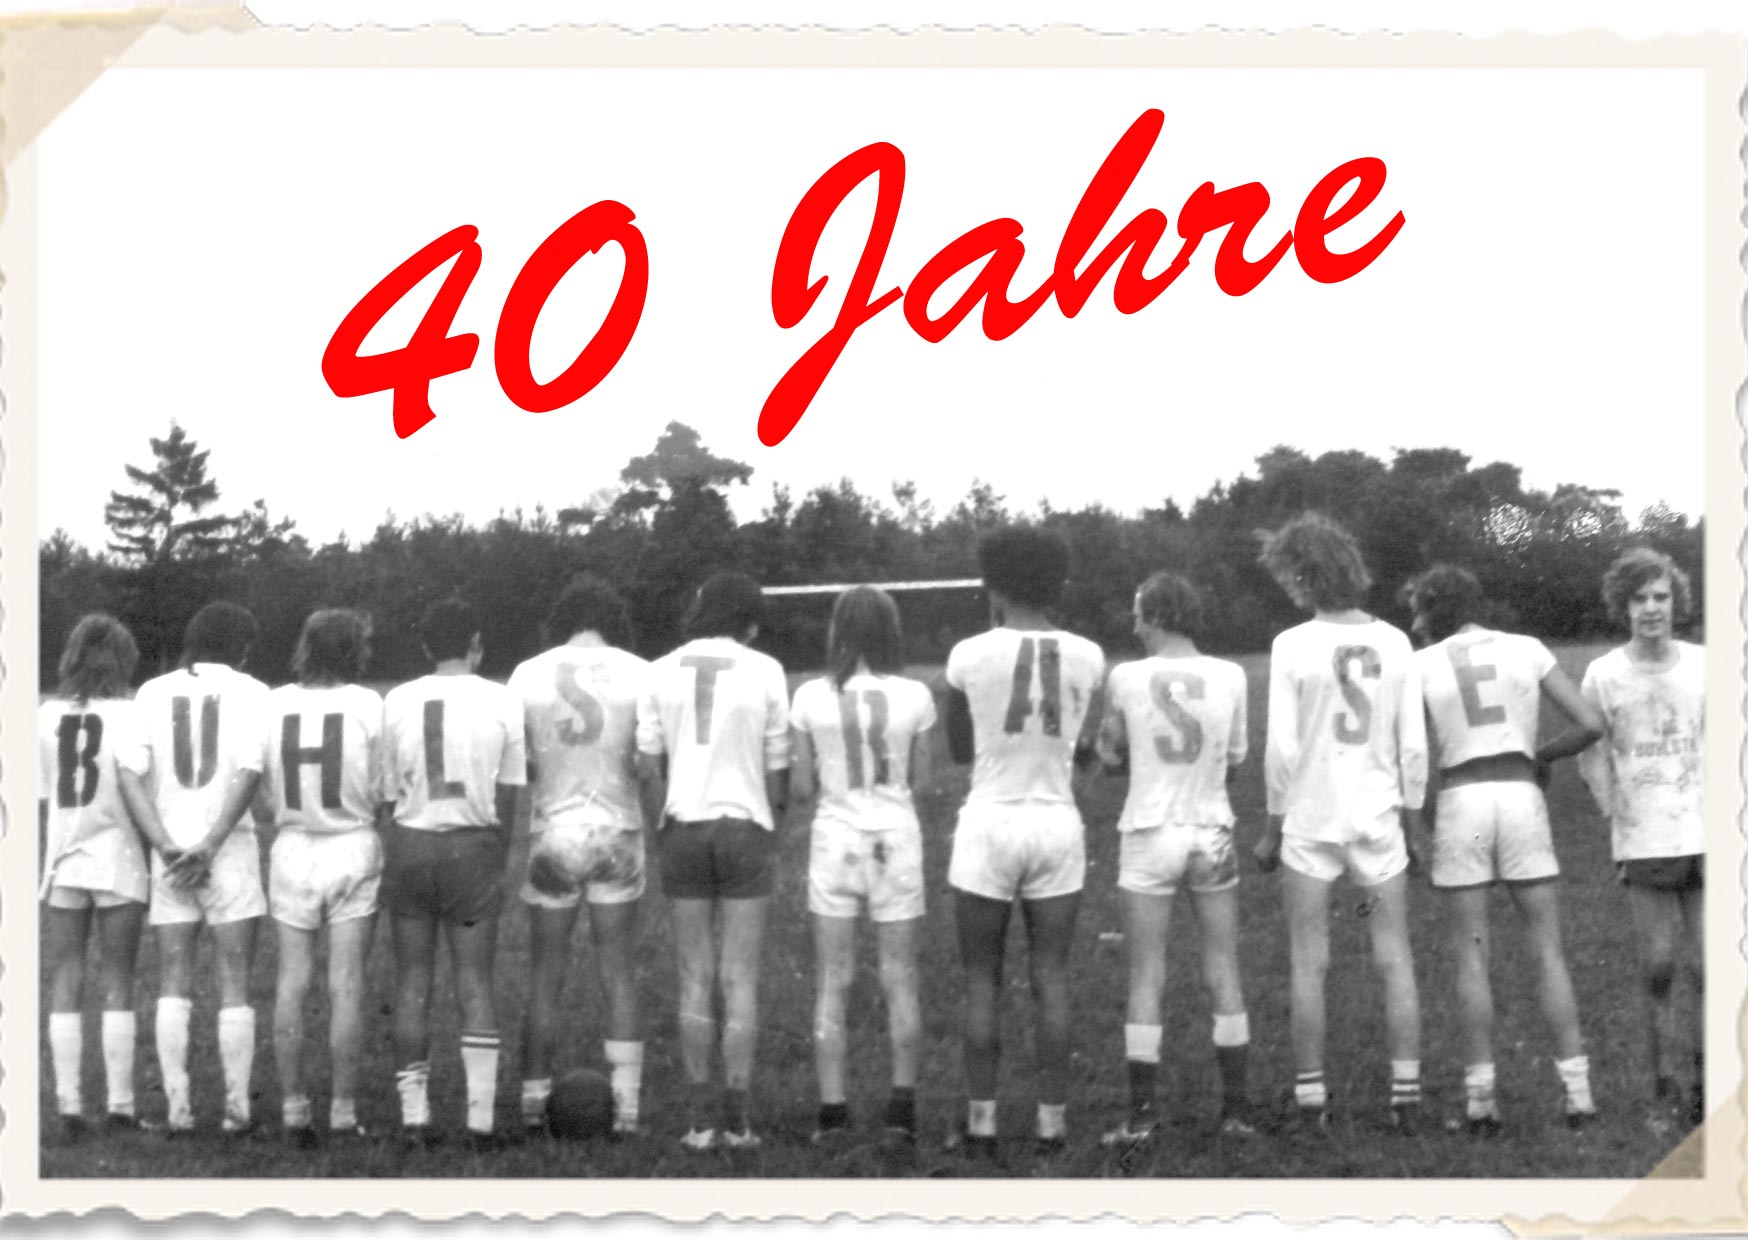 40 Jahre AG Buhlstrasse